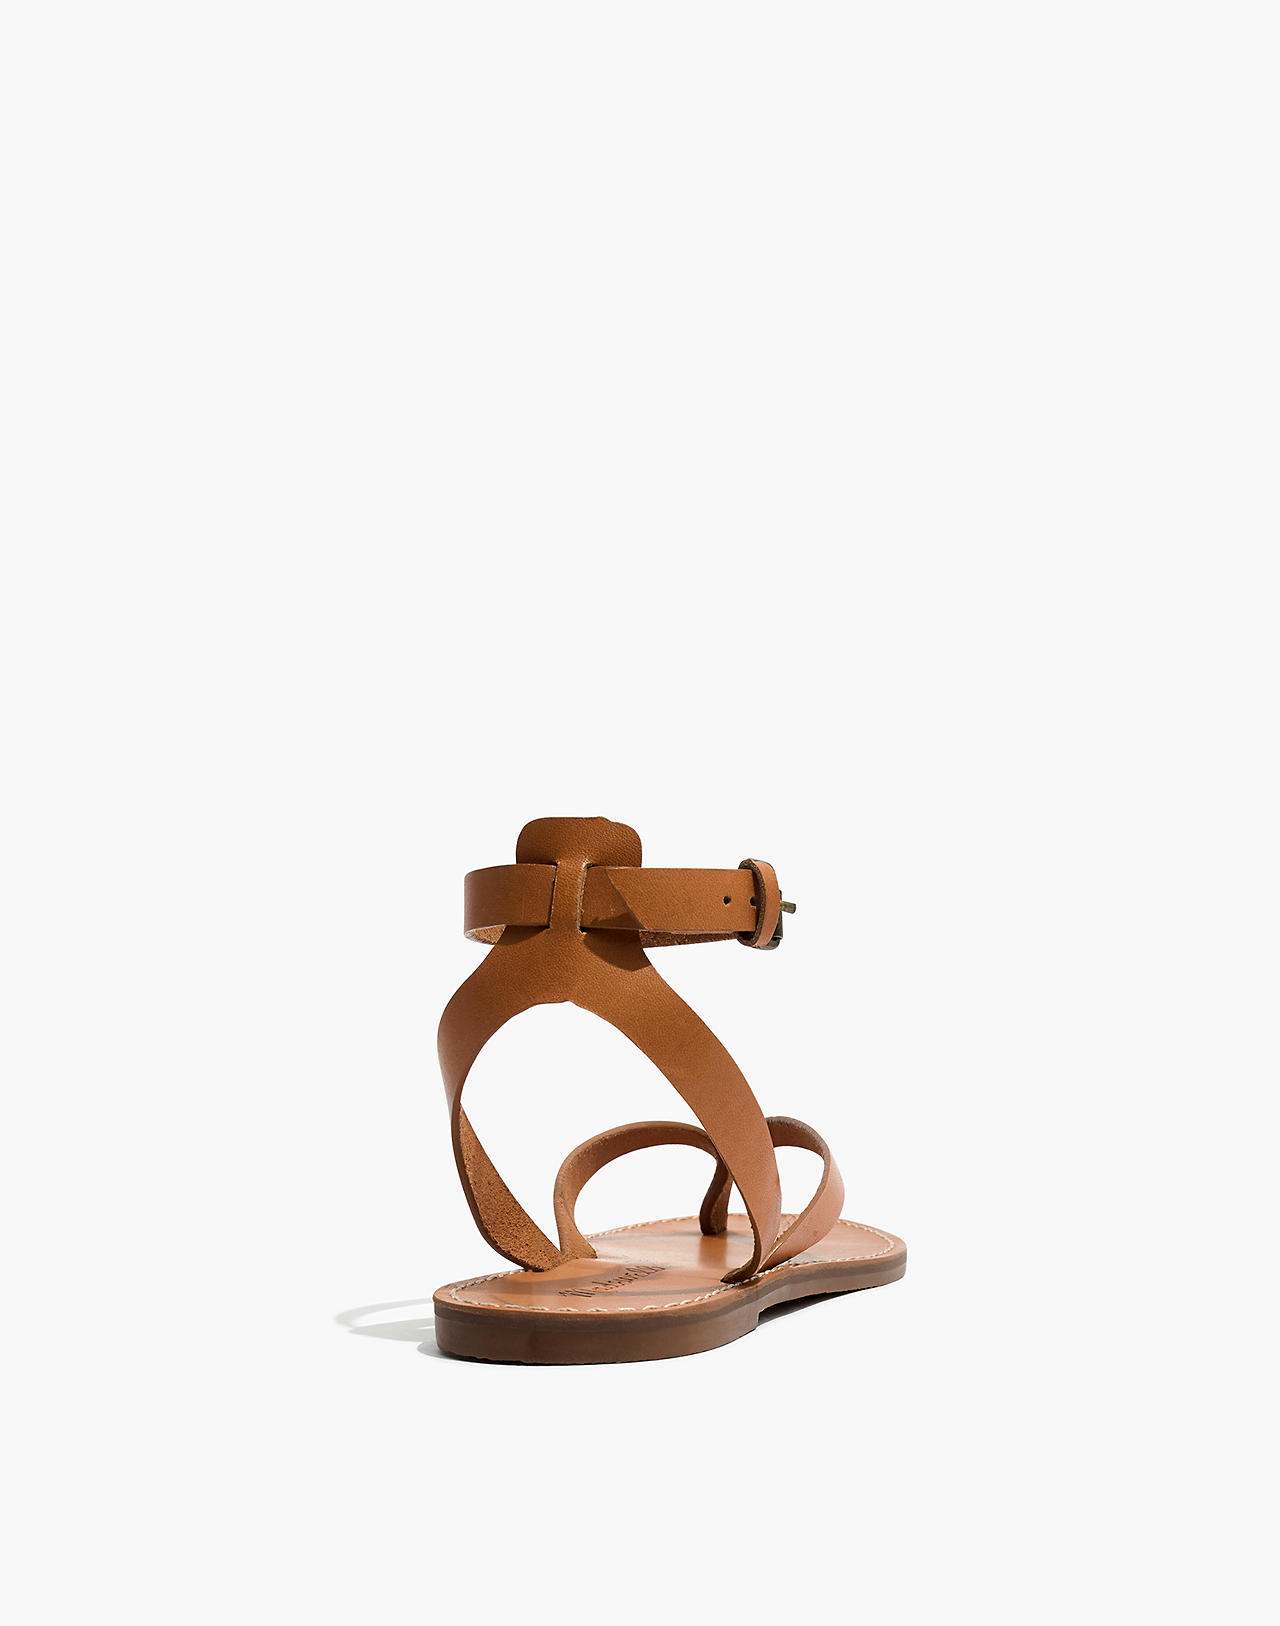 414869d59b89b1 The Boardwalk Thong Sandal in desert camel image 4